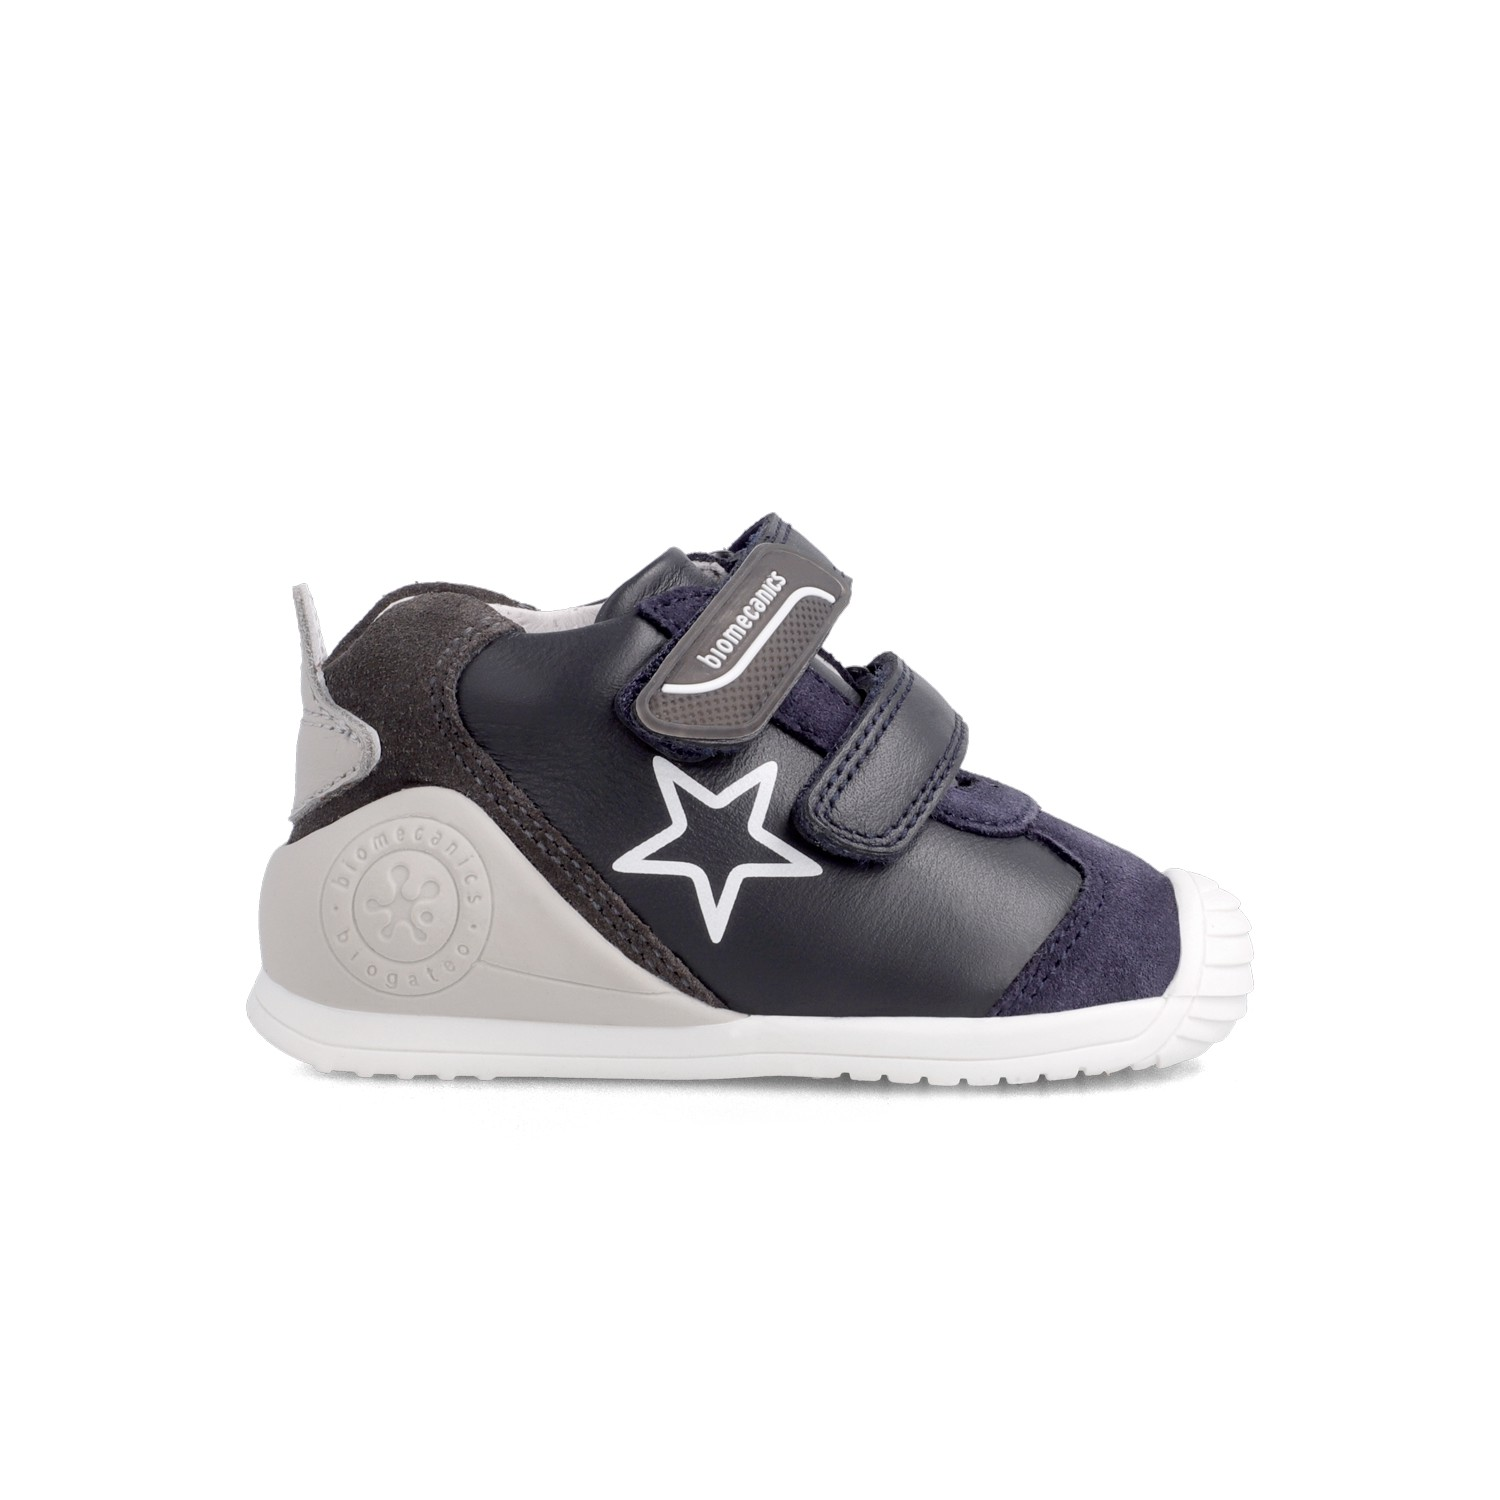 Leatrher sneakers for baby boy 211145